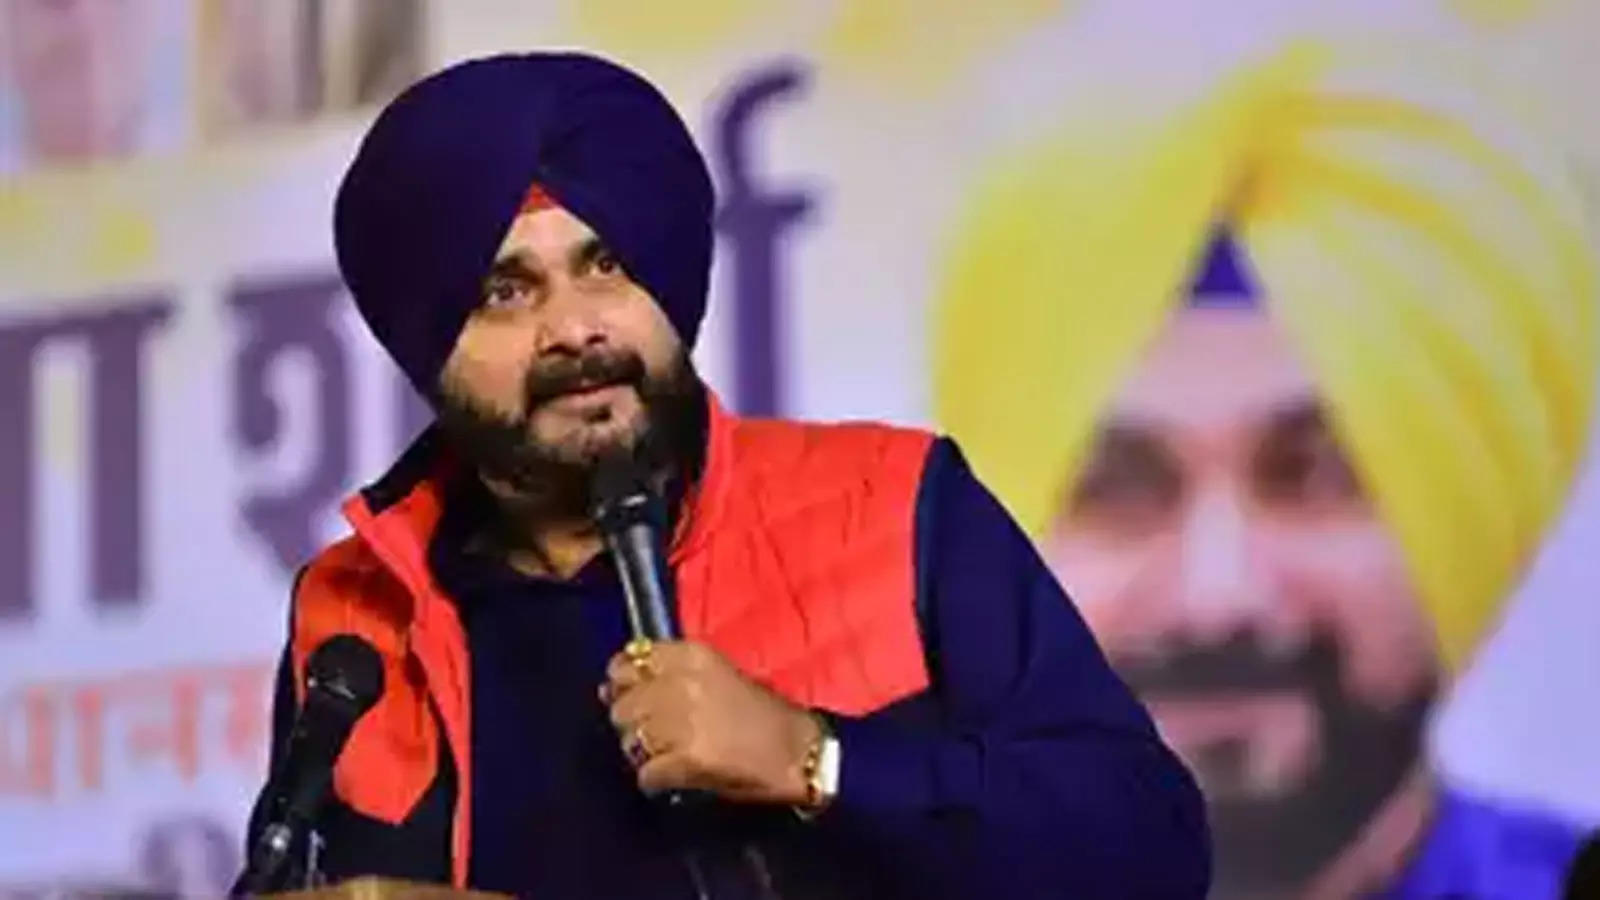 sidhu-withdraws-resignation-after-meeting-rahul-gandhi-says-issues-sorted-out